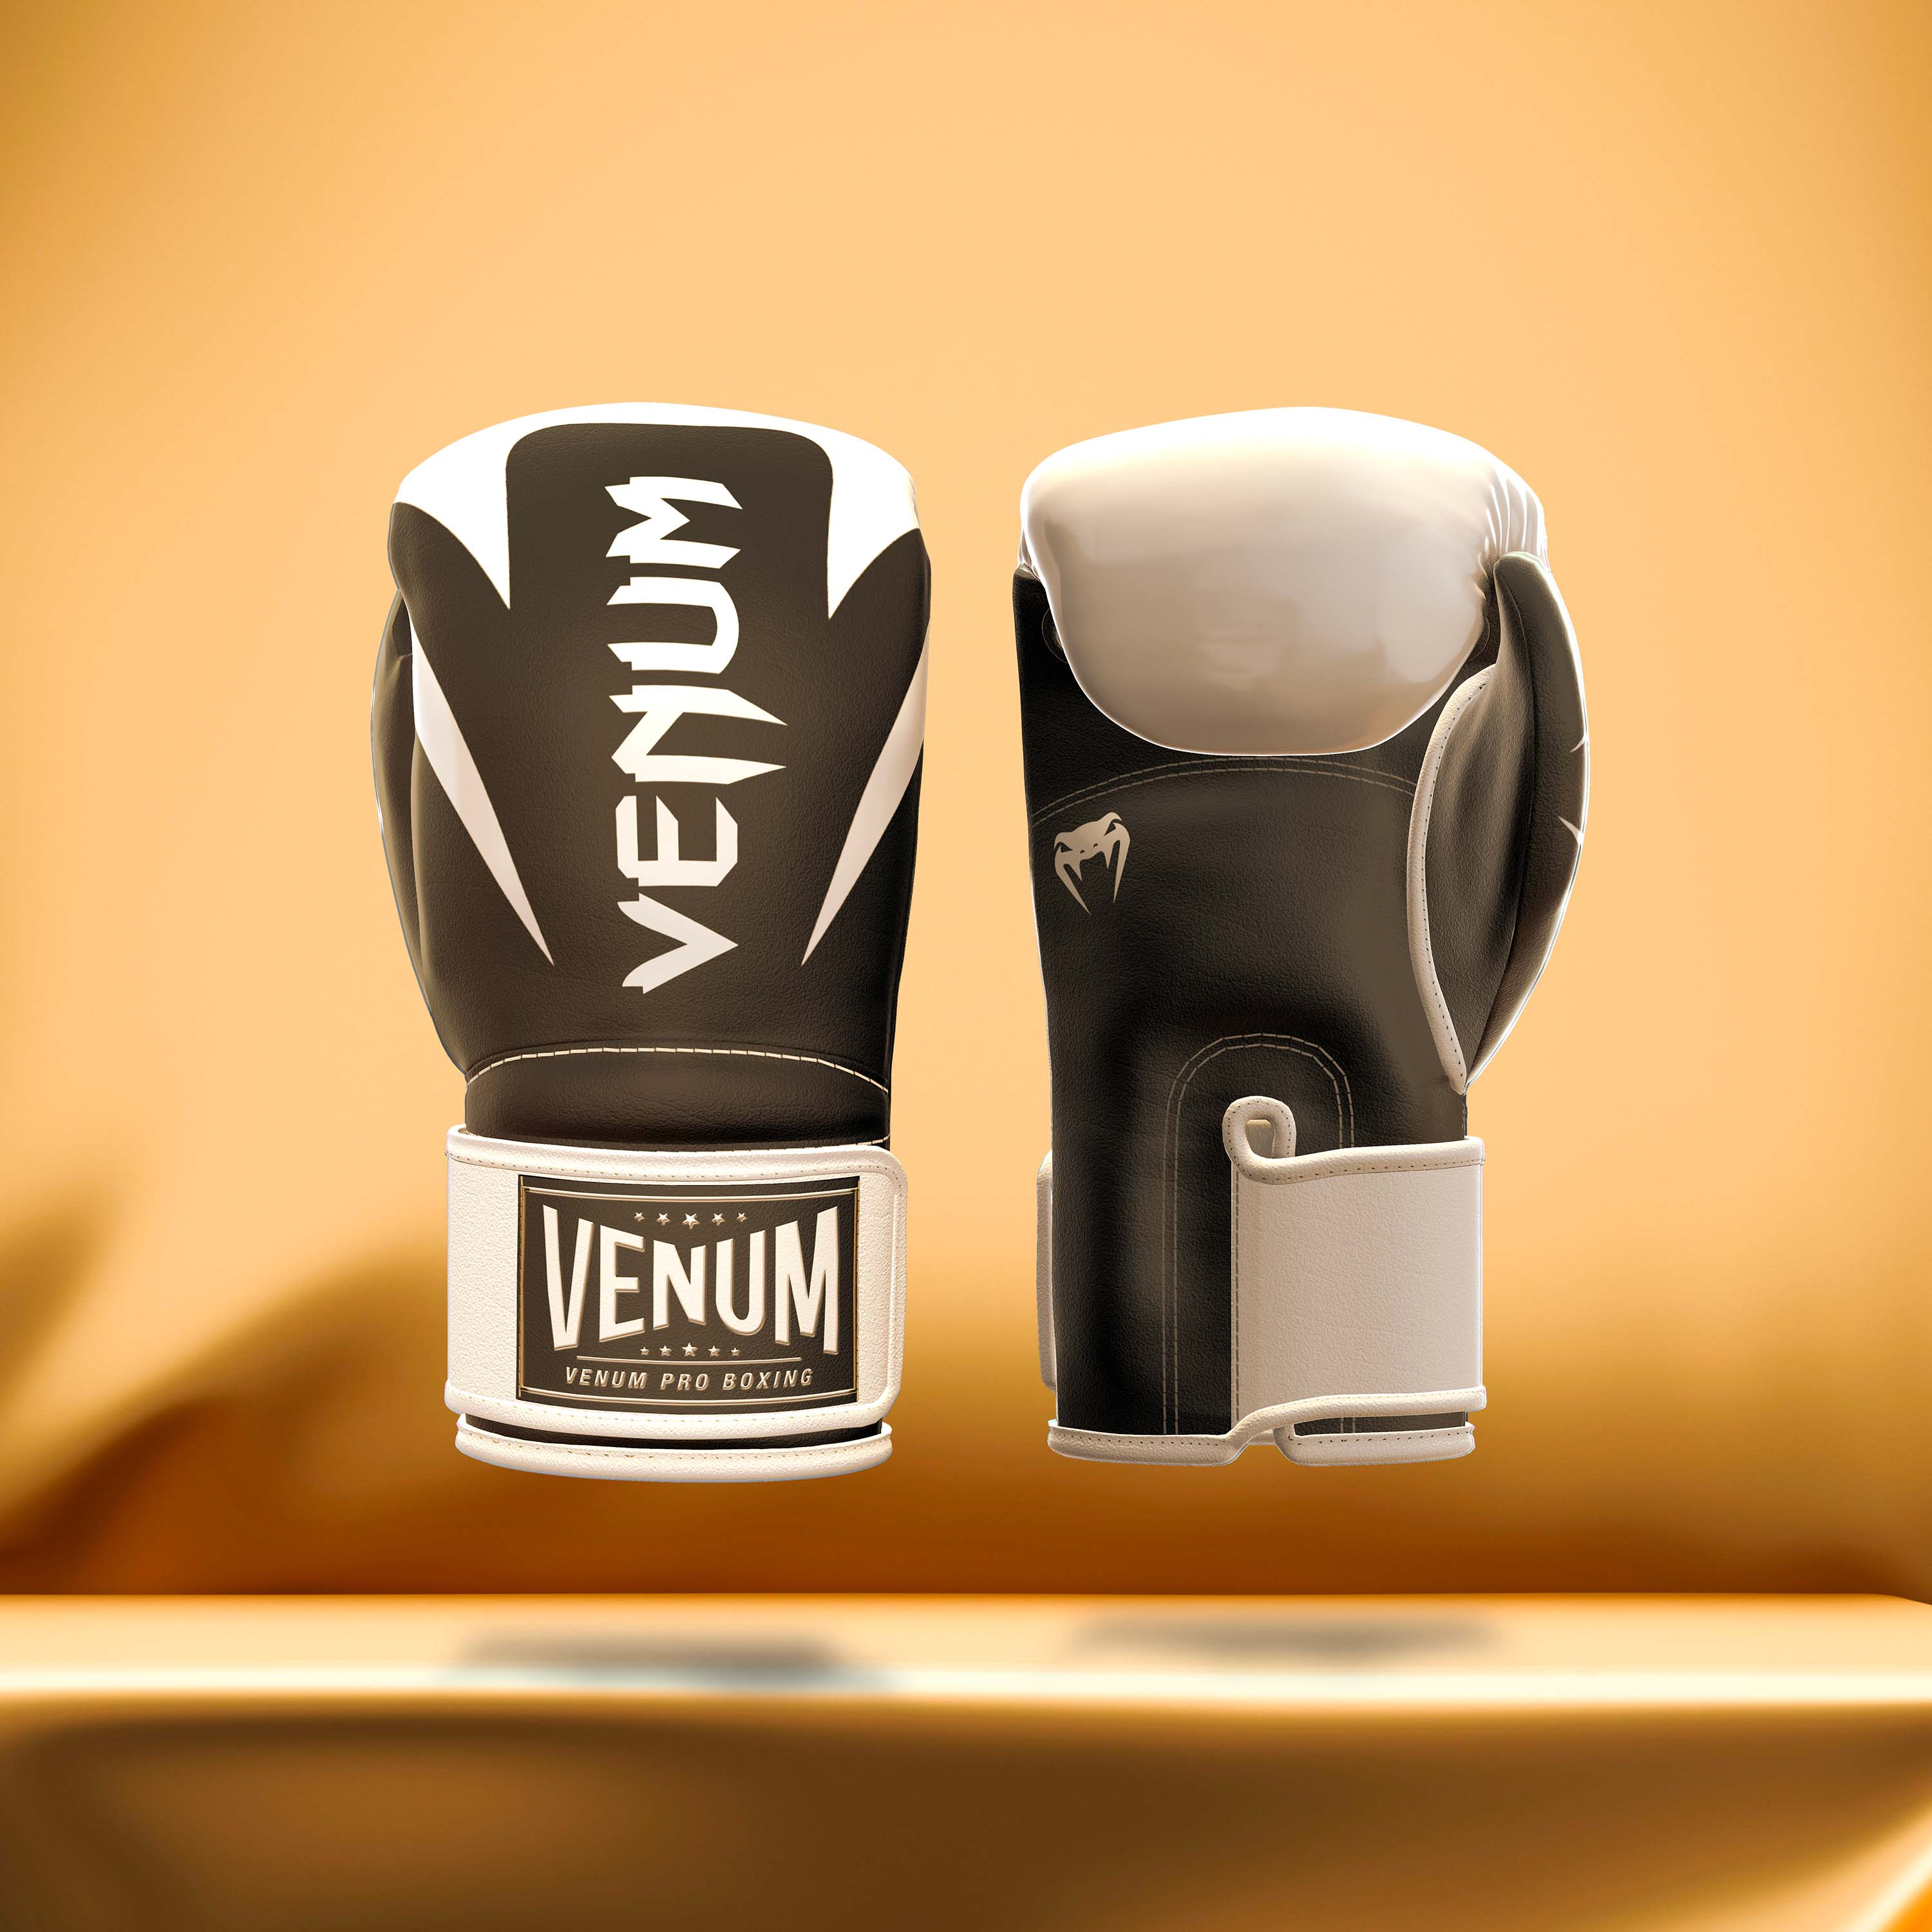 a ray tracing 3D render by Naker boxing gloves